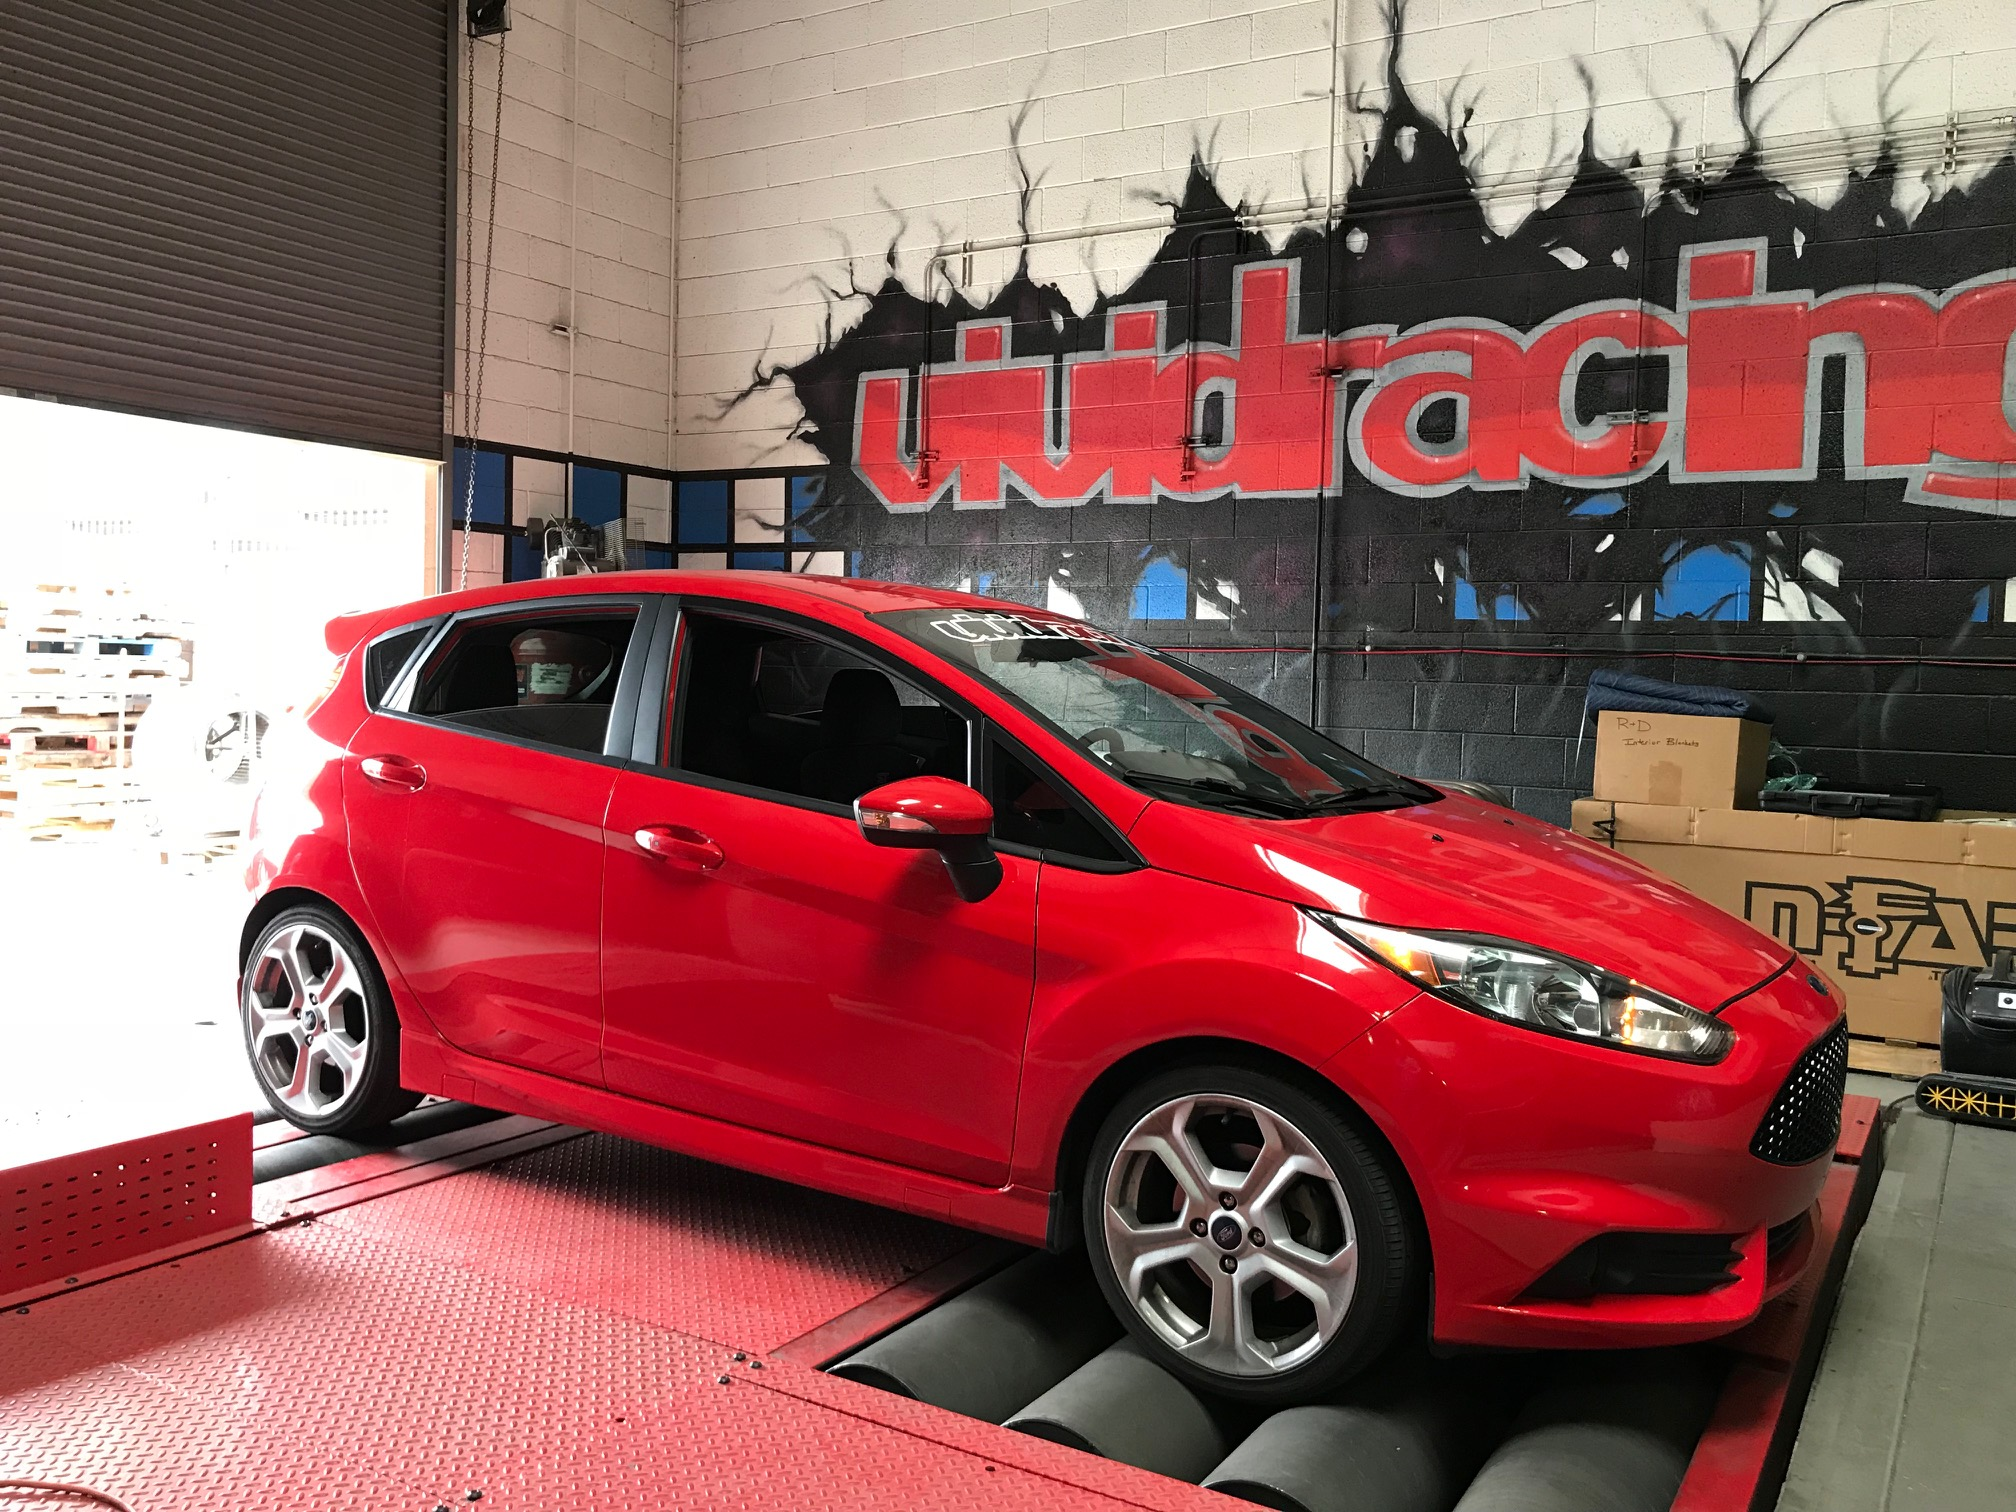 Ford Fiesta St Ecu Tuning By Vr Tuned